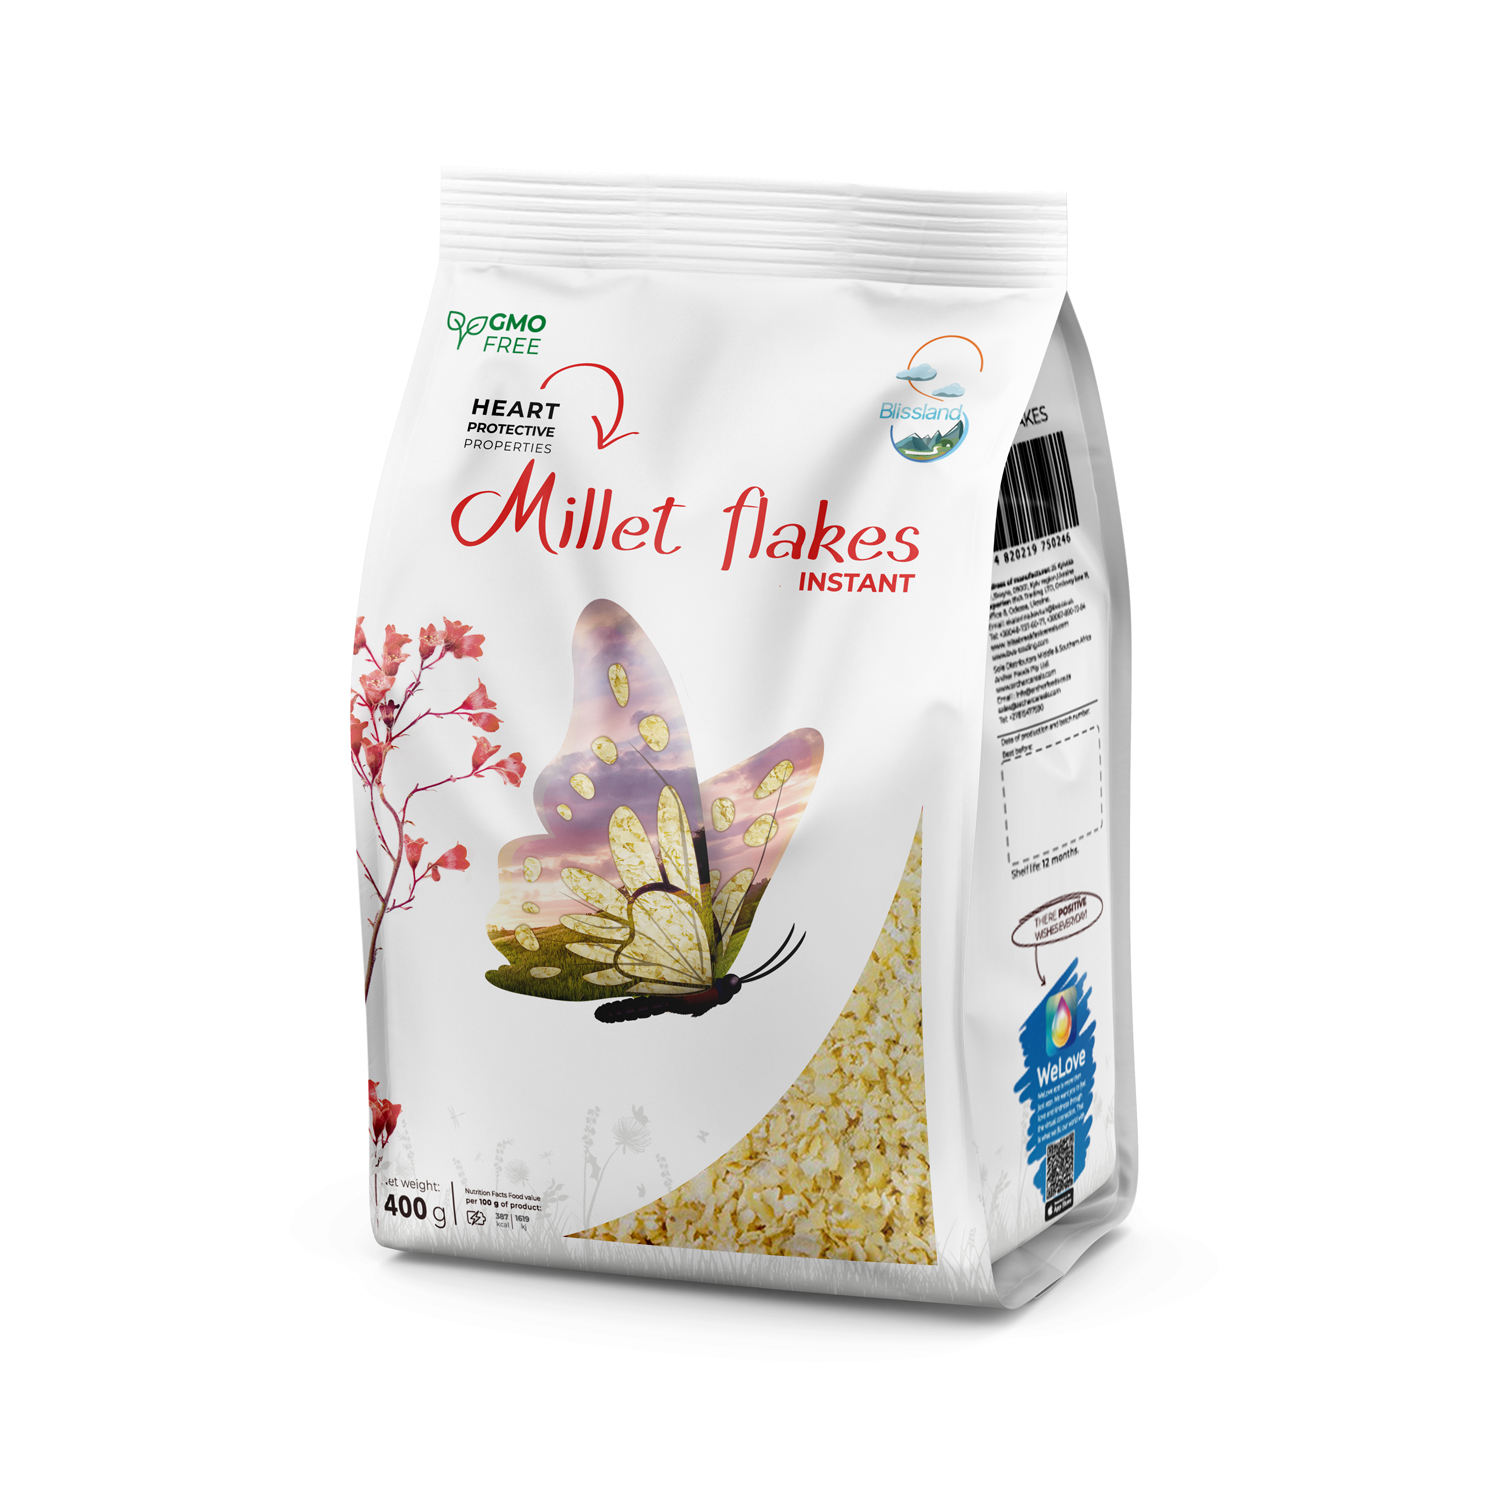 Millet flakes of instant cooking